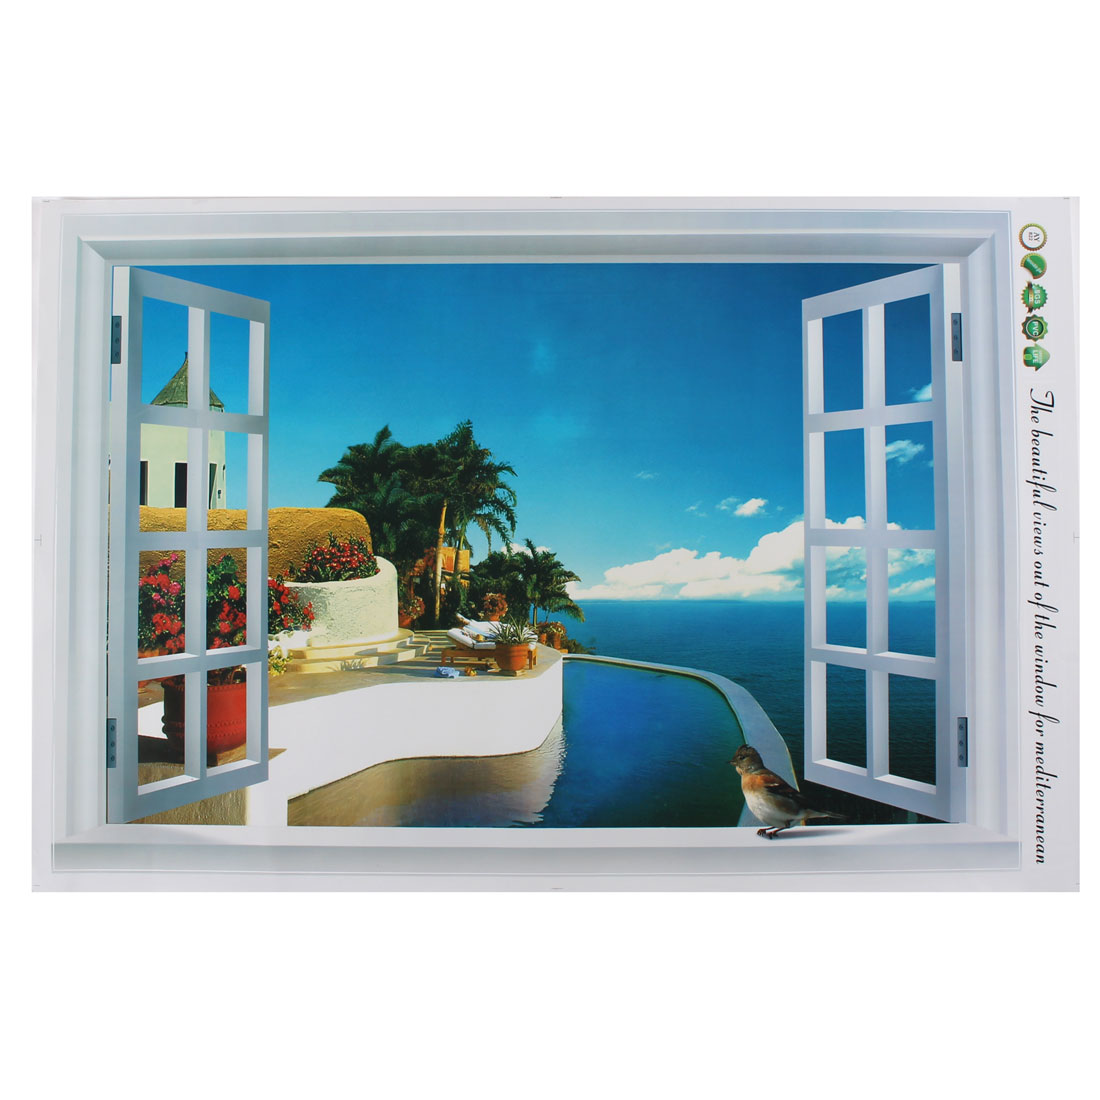 Home 3D Ocean Coast Scenery Pattern Art Decal Wall Sticker Mural Decoration